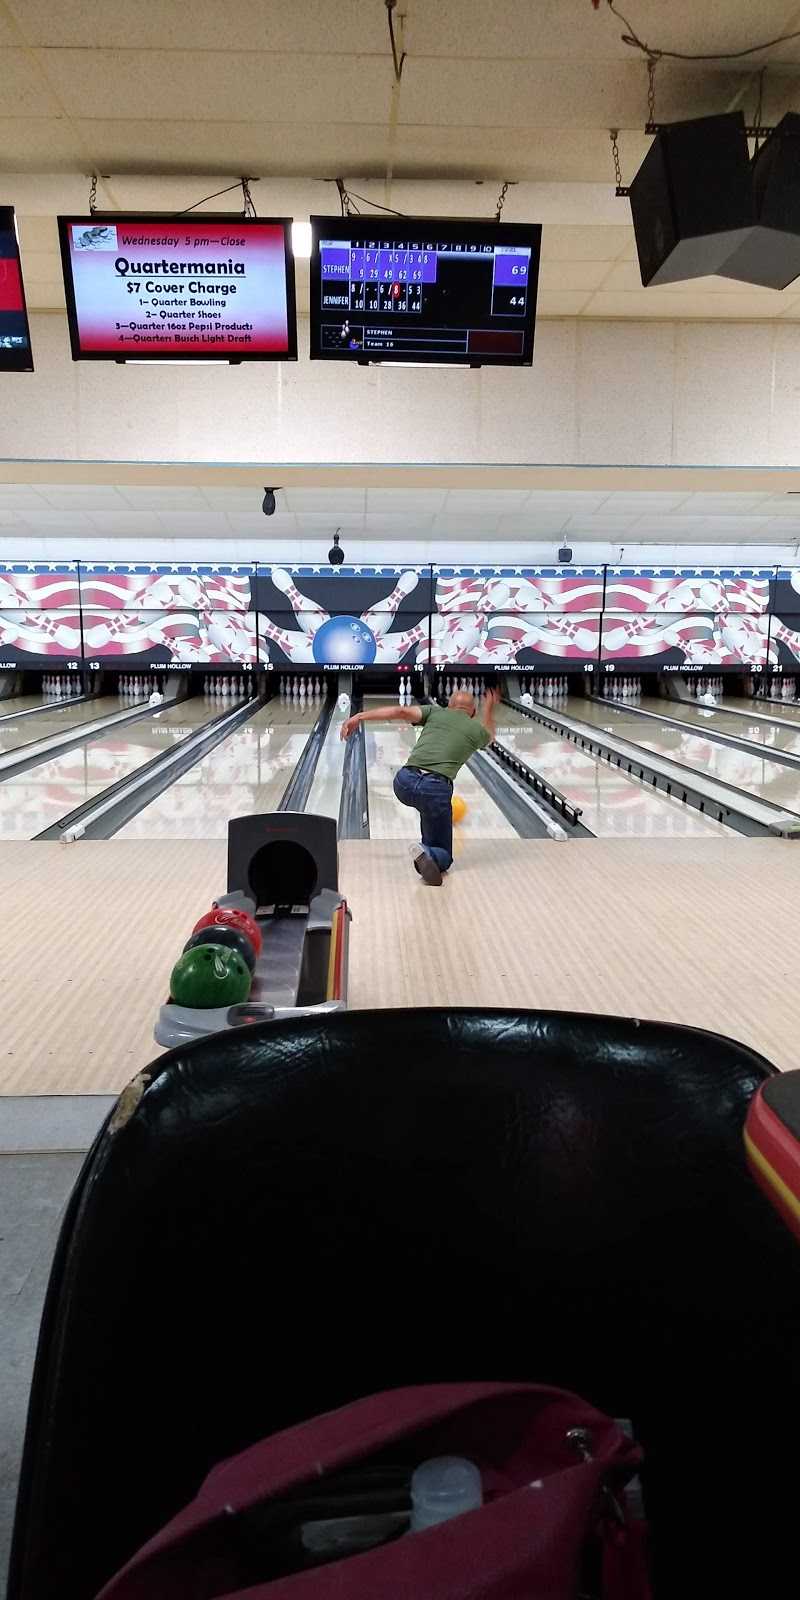 Plum Hollow Family Center - bowling alley  | Photo 8 of 10 | Address: 1933 IL-26, Dixon, IL 61021, USA | Phone: (815) 271-4101